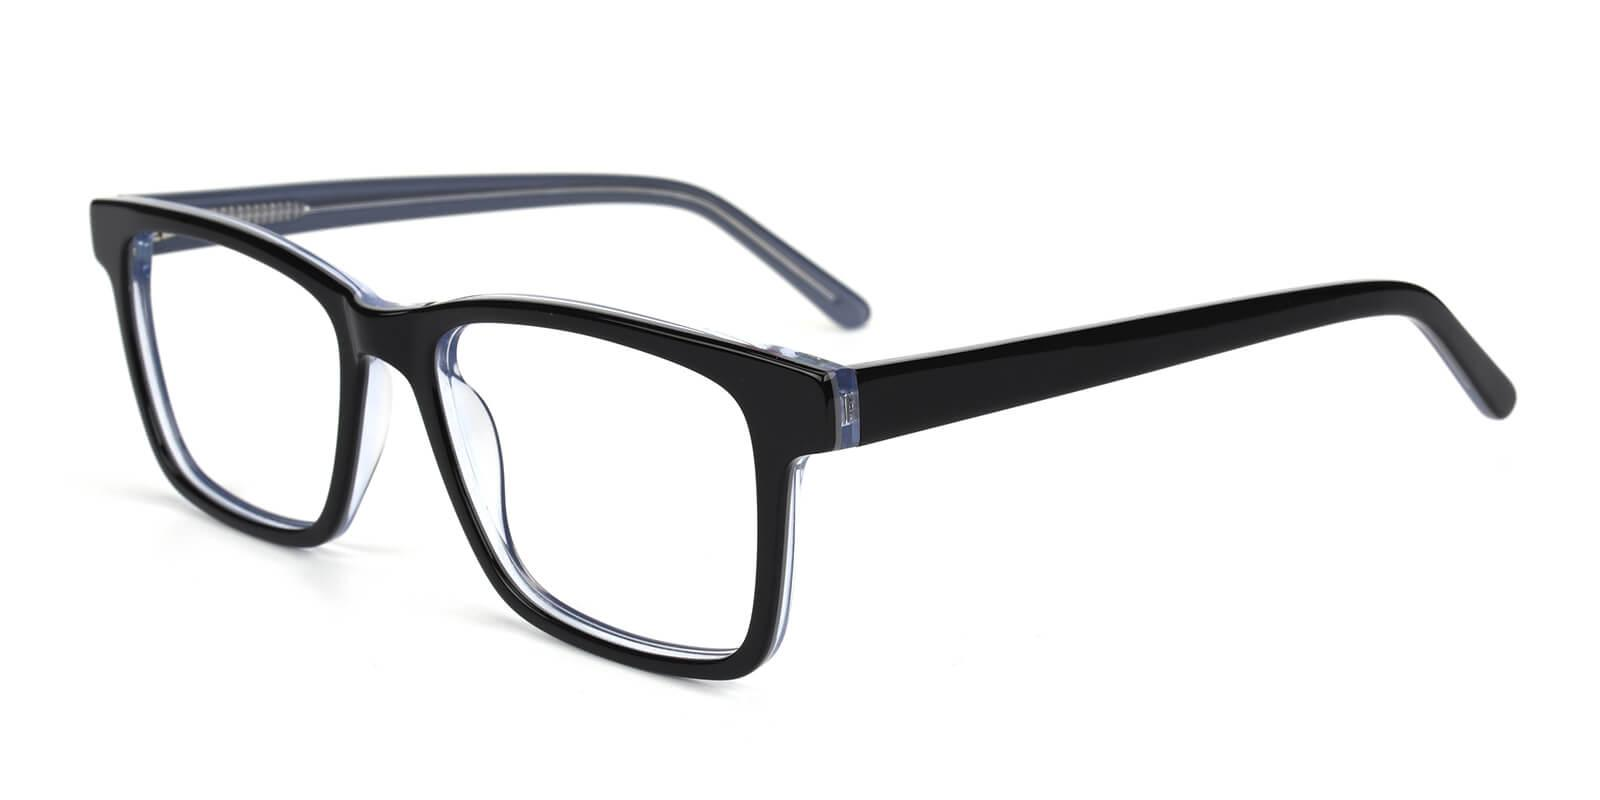 Richard-Multicolor-Square-Acetate-Eyeglasses-additional1